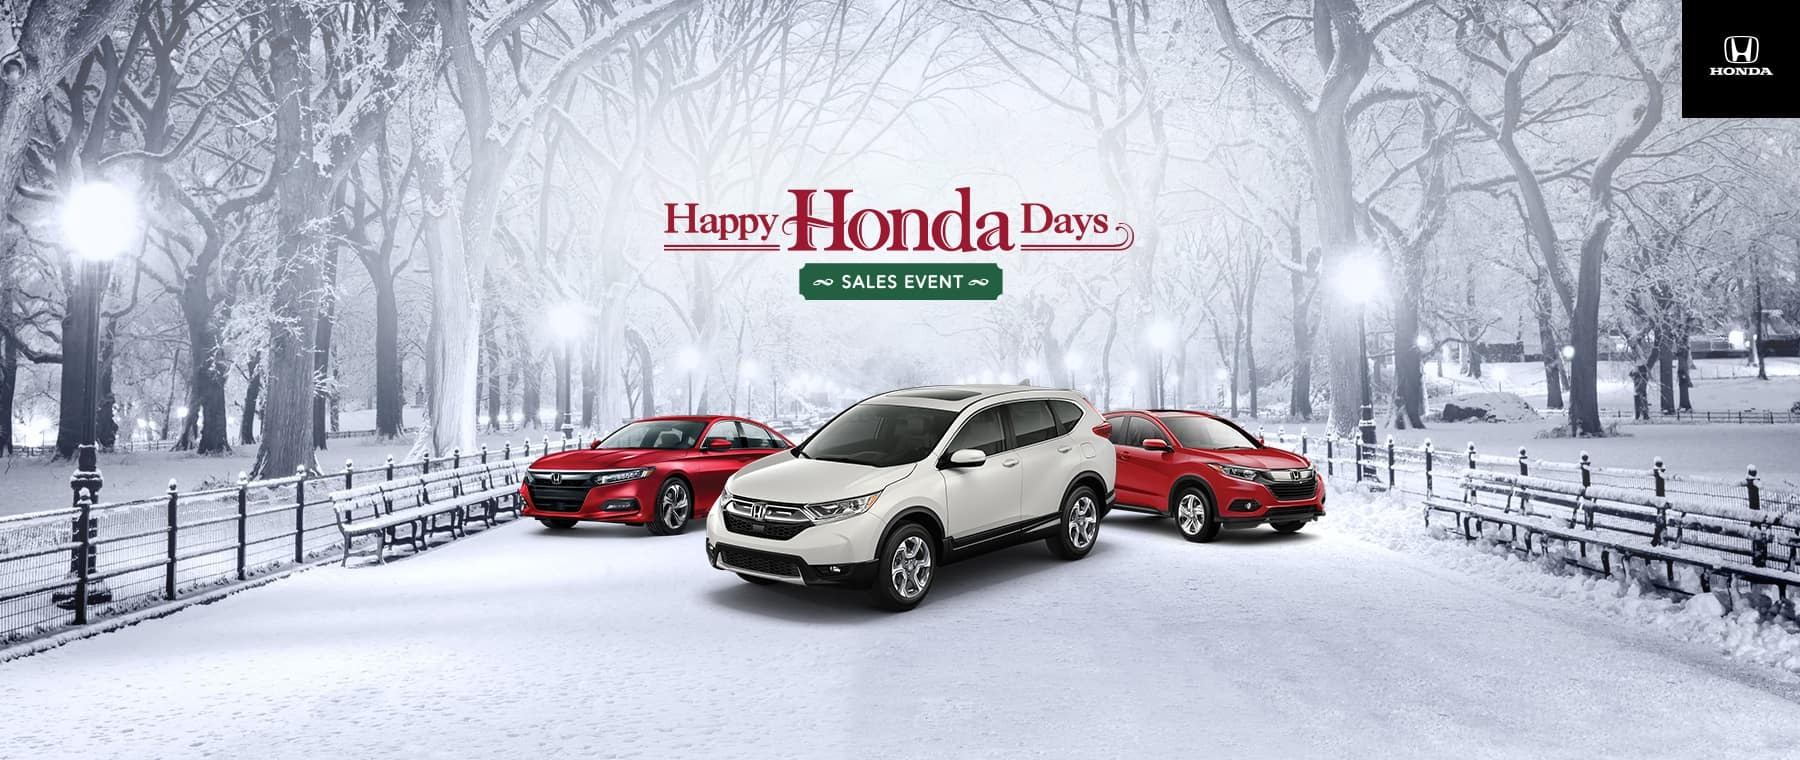 Honda Dealers In Tennessee >> Honda Dealership Chattanooga Tn New And Used Cars Honda Of